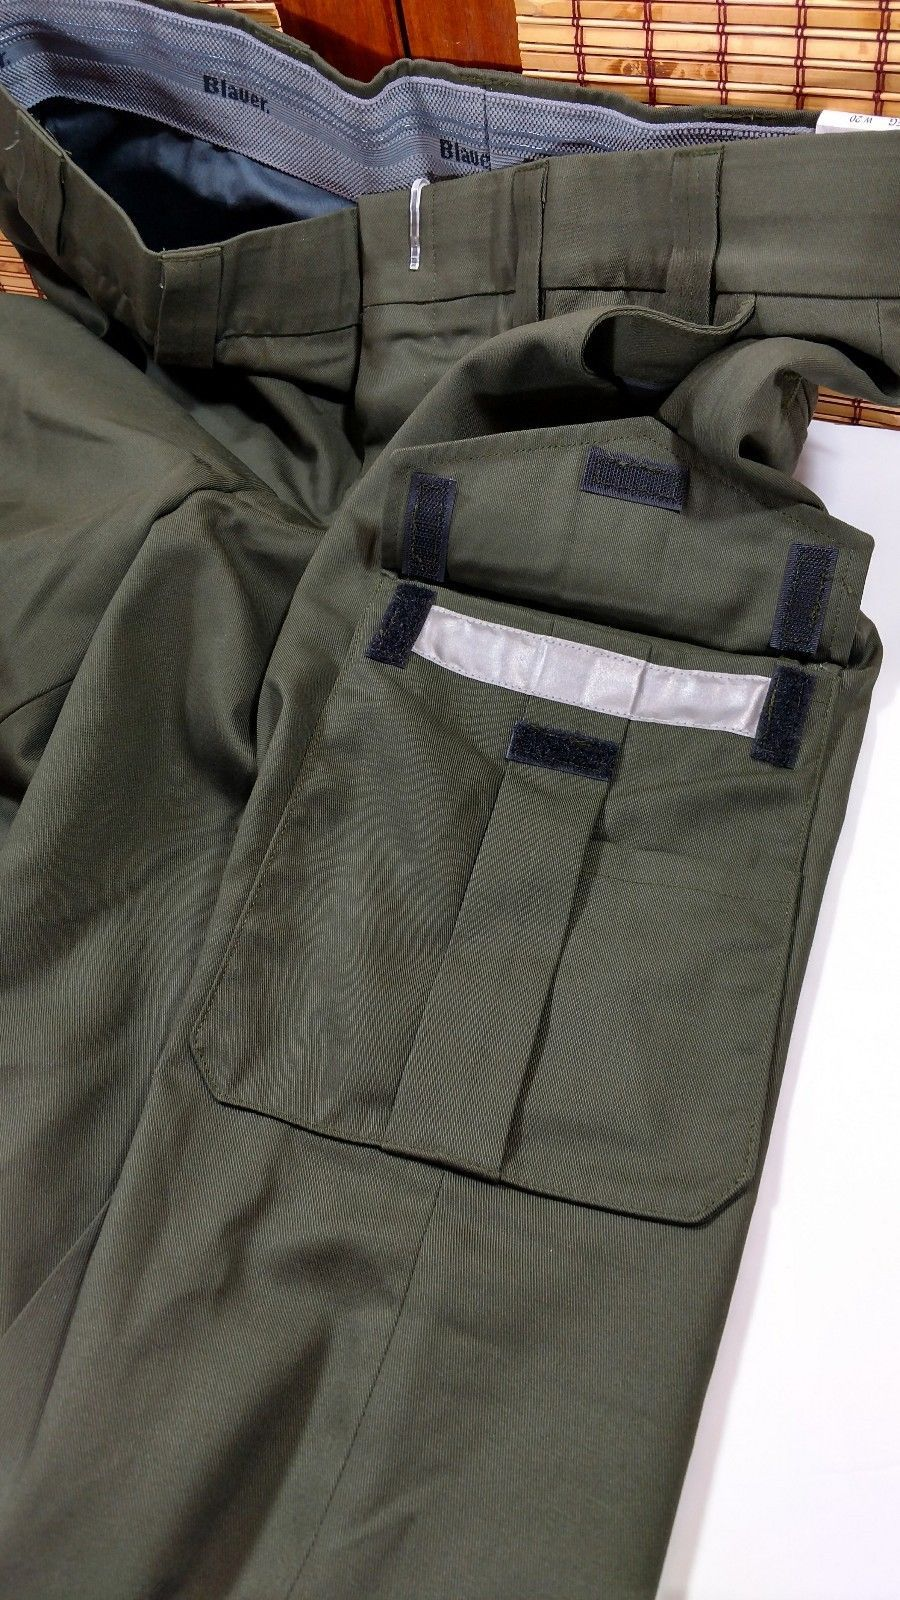 9cc99d0c5a Blauer Side Pocket Sheriff Border Patrol Duty Tactical Pants Trousers Green  8980